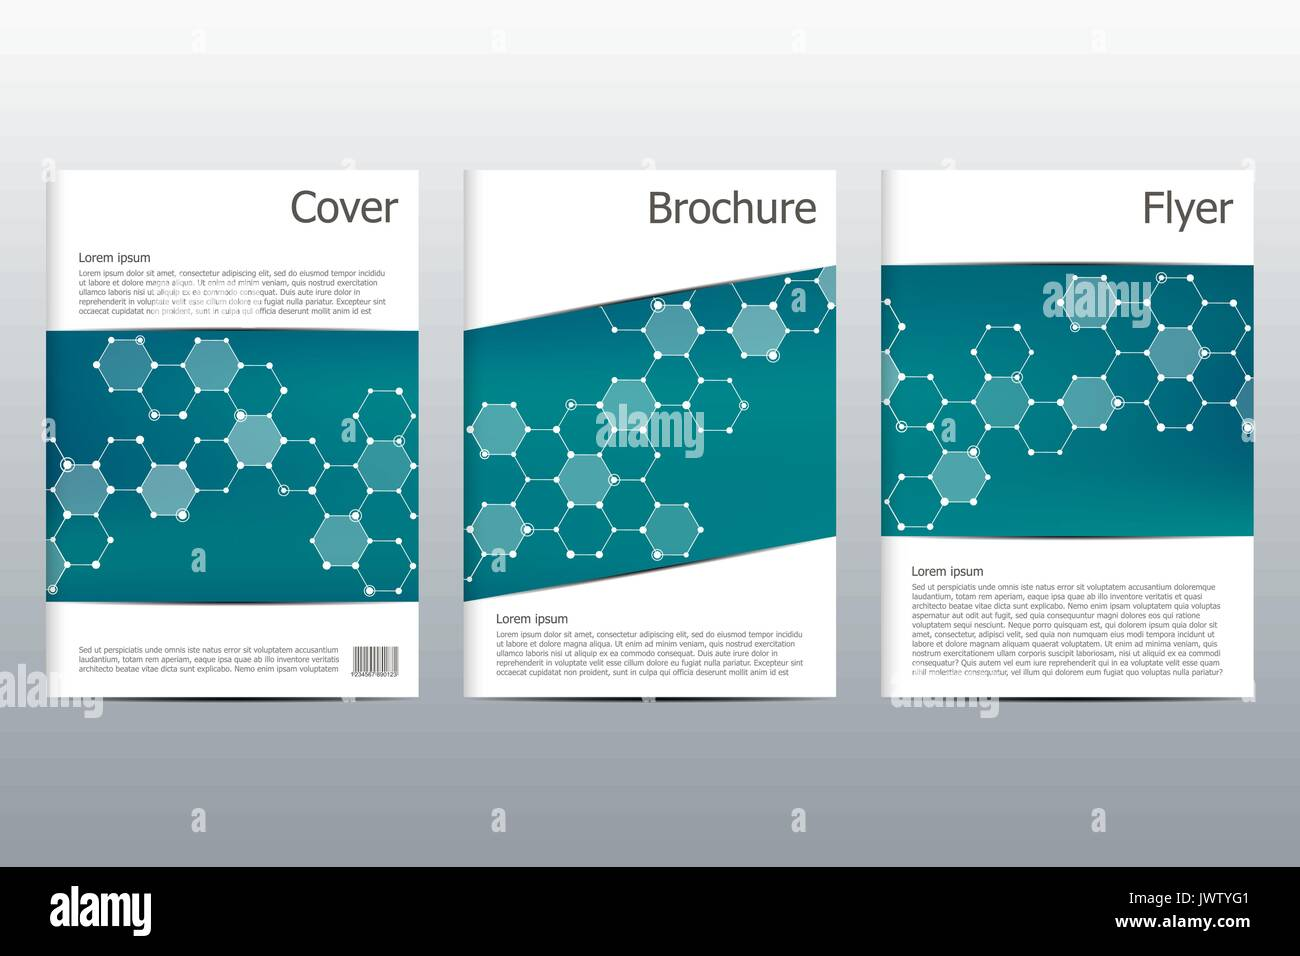 brochure template layout flyer cover annual report magazine in